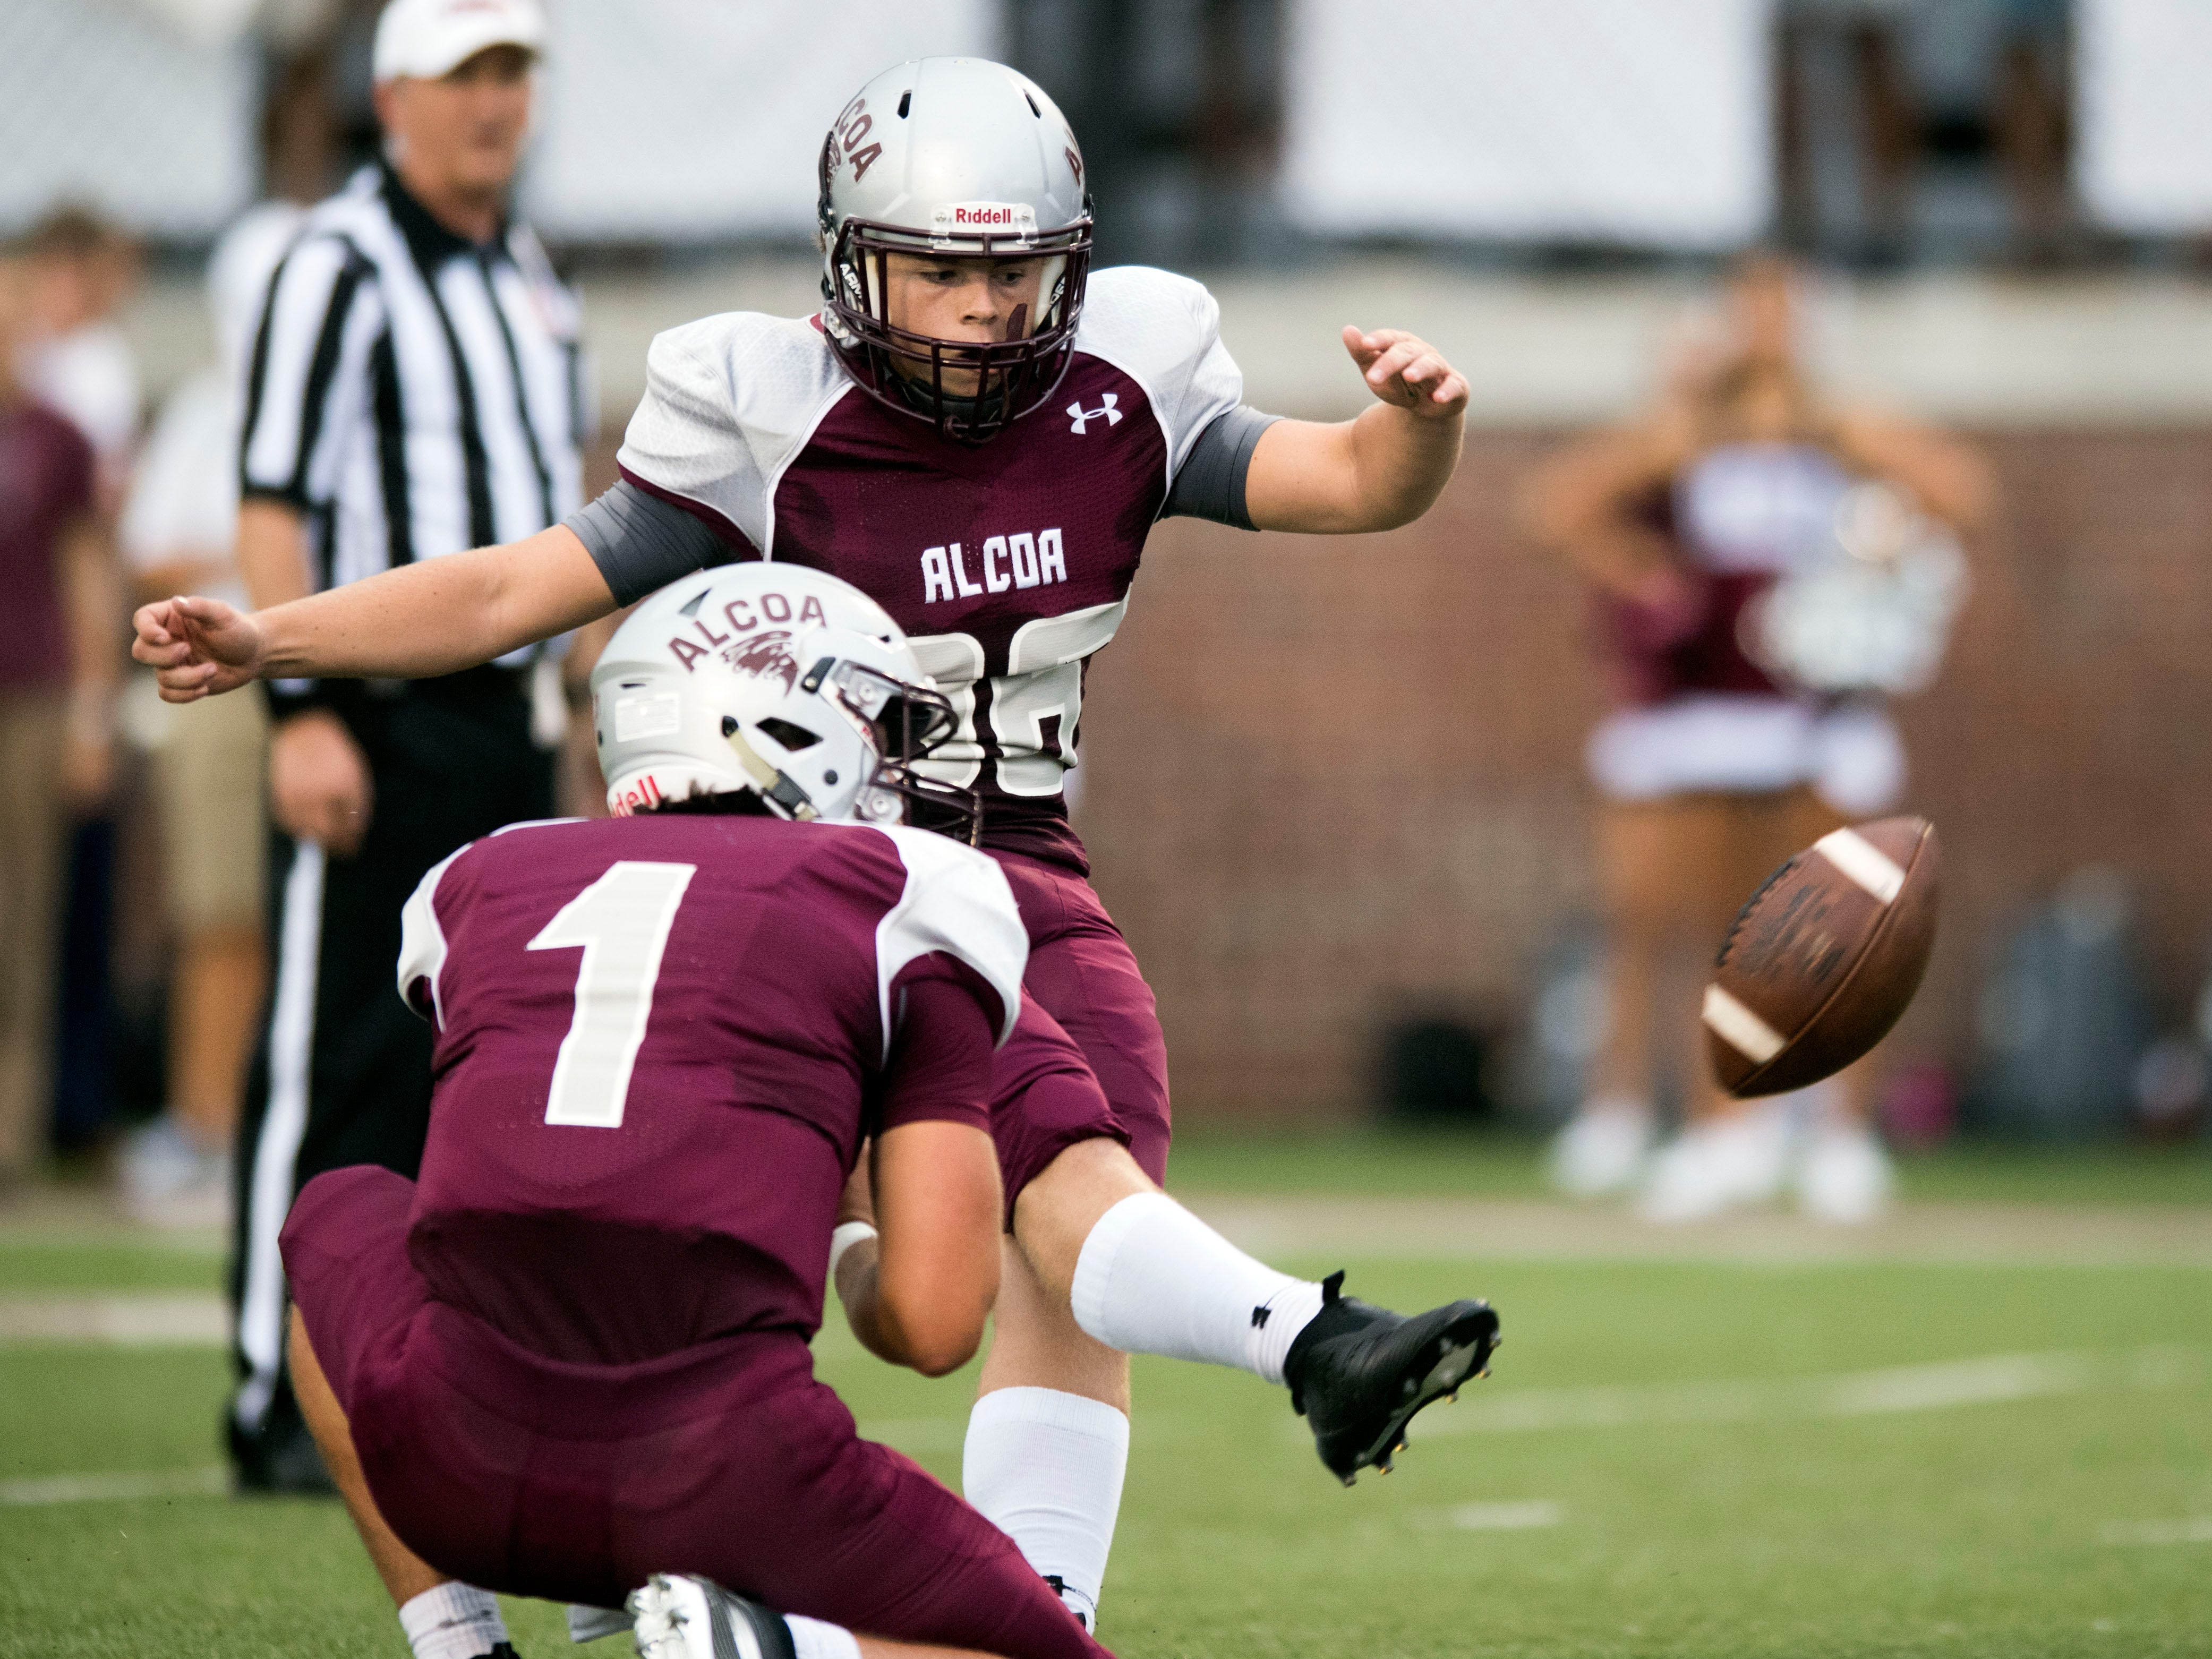 Alcoa's Zeke Rankin (96) makes the extra point with placeholder Walker Russell (1) during the football game against Grace Christian Academy on Thursday, August 16, 2018.